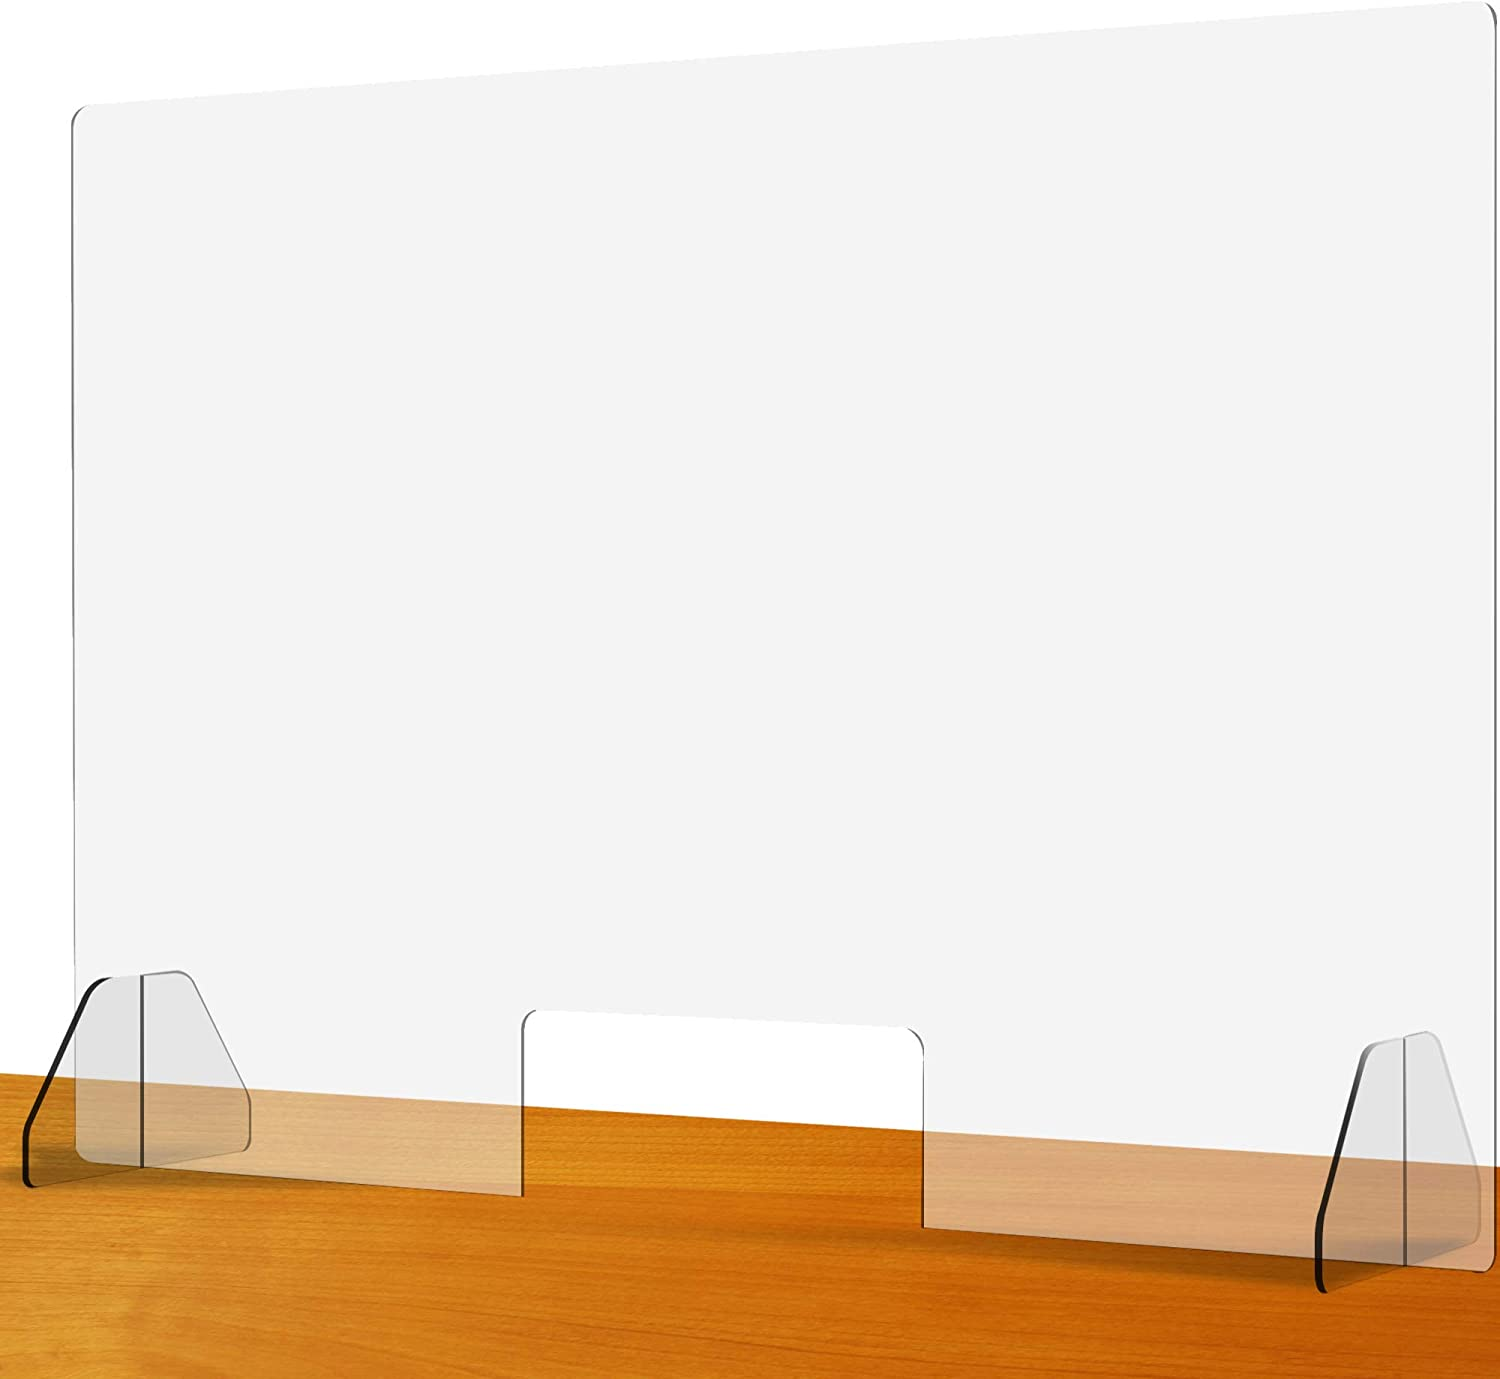 """Clear Acrylic Plexiglass Sneeze Guard 36""""W x 24""""H - Protective Plastic Window Barrier Screen and Shield - Freestanding Portable Germ Protection Shields for Office Desk, Counter, Table and Nail Salon"""